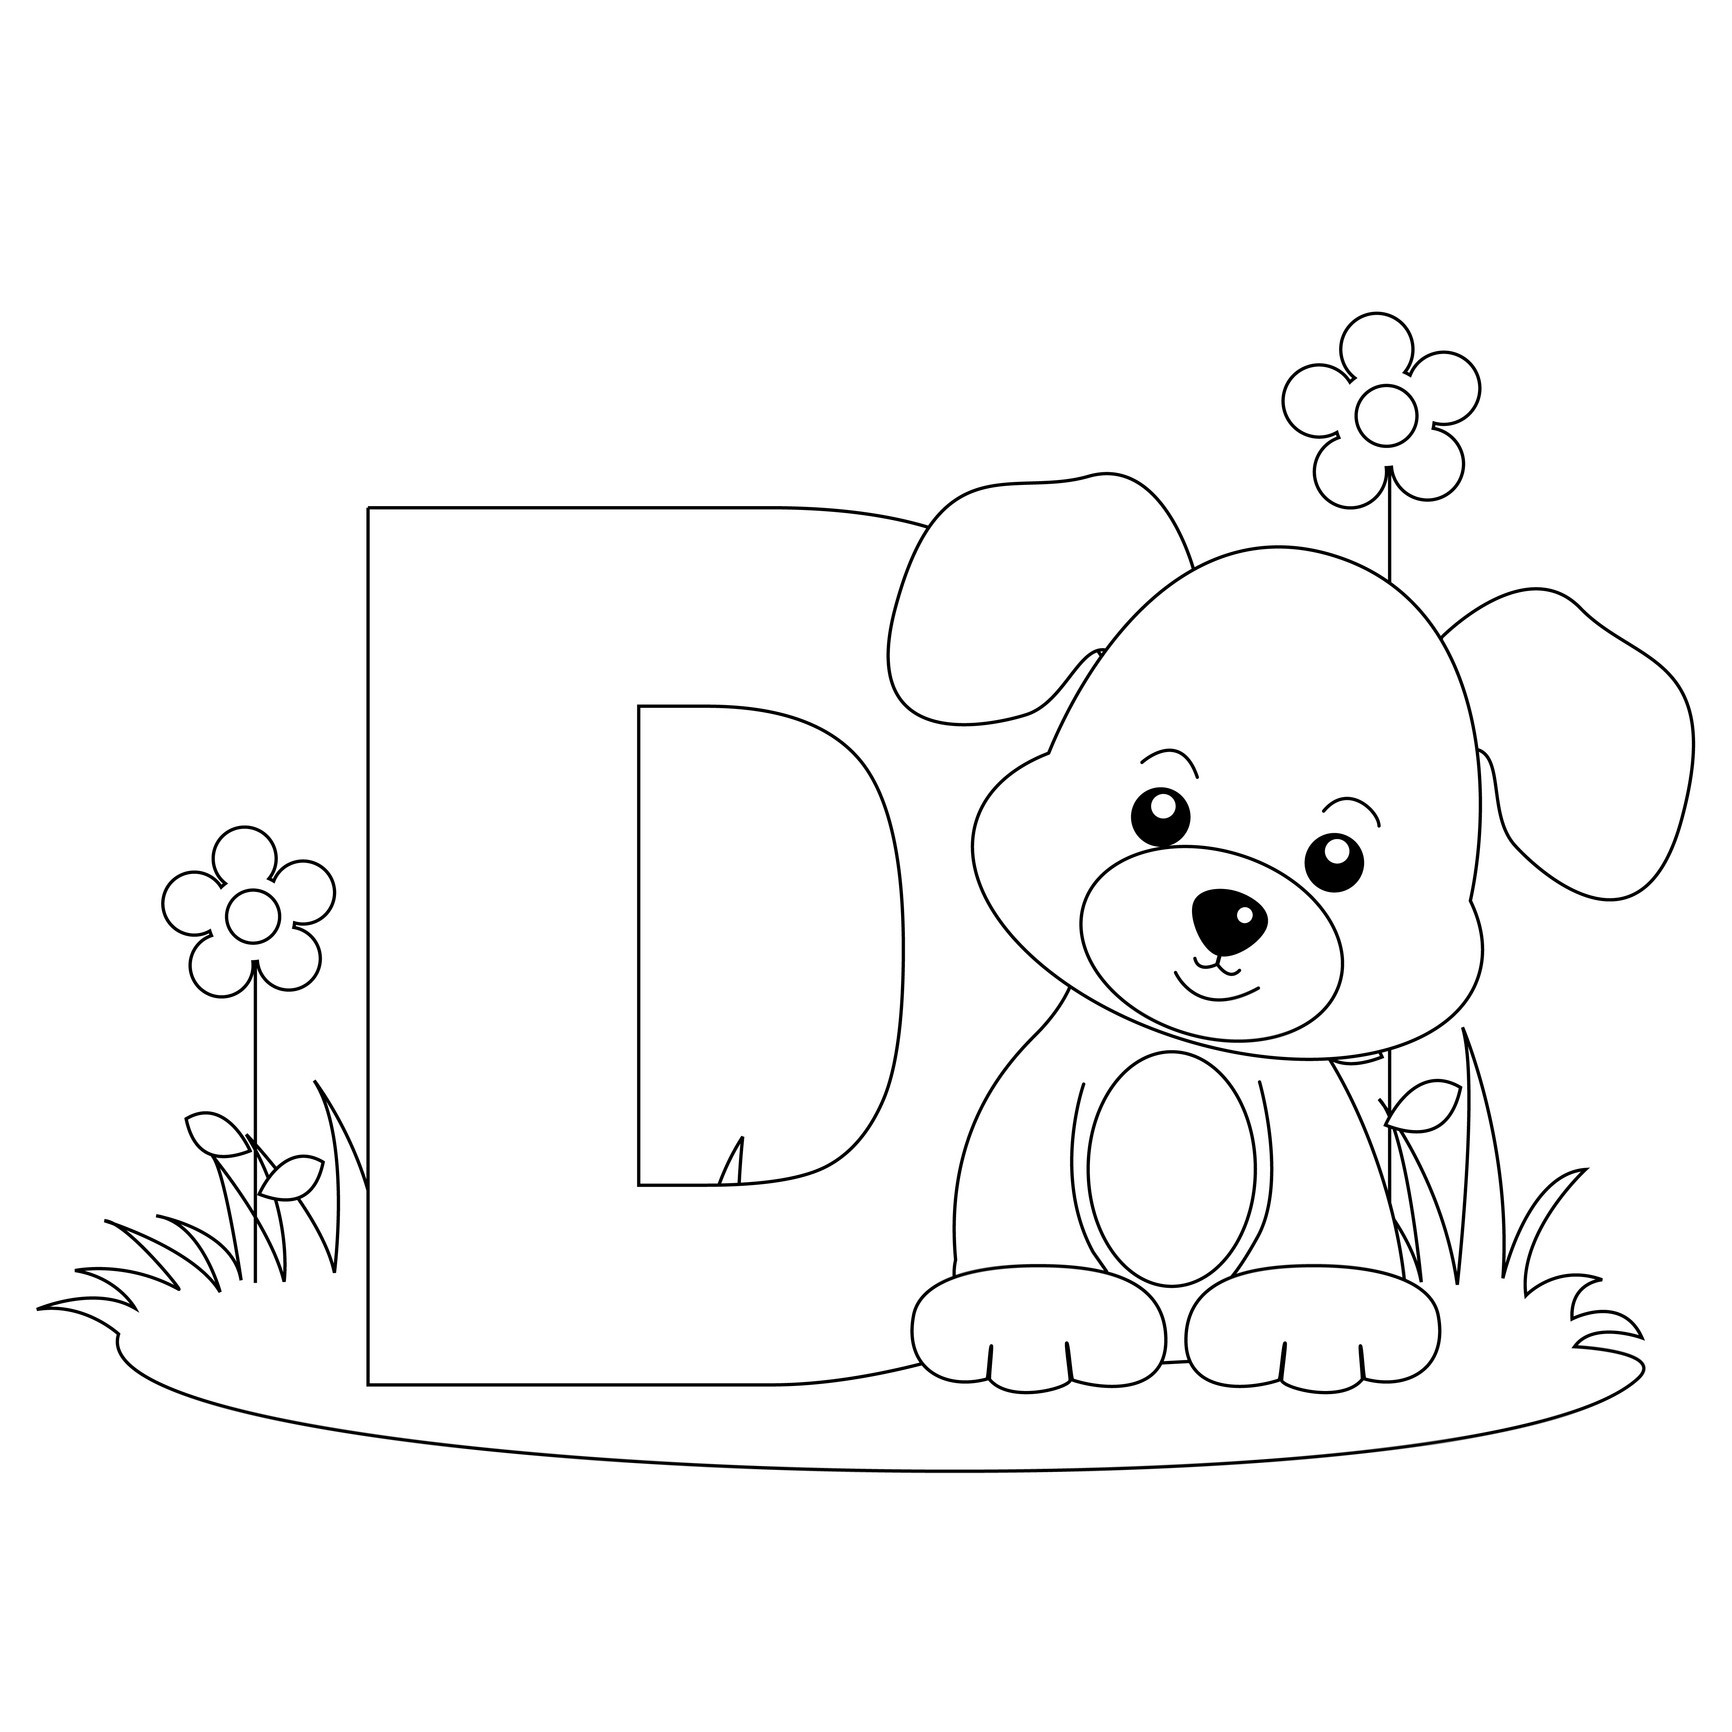 alphabet coloring pages for preschool - photo#16